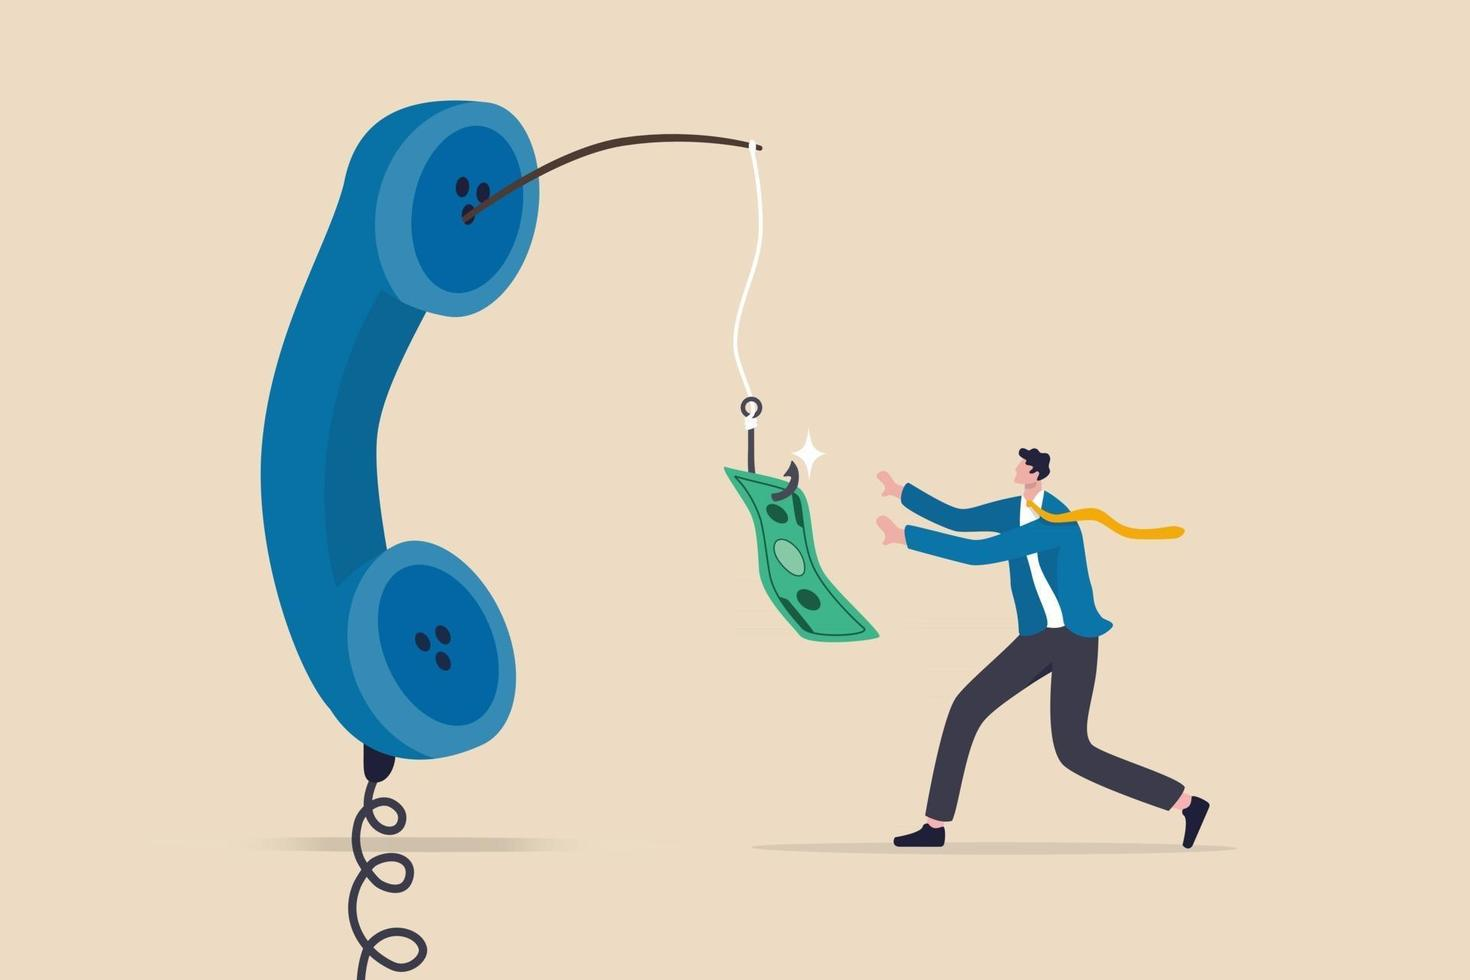 Phone scam, telephone call lying about fake investment, fraud to steal money from victim, financial crime concept, greedy man chasing easy money bait from thief phone call lying for paying scams. vector